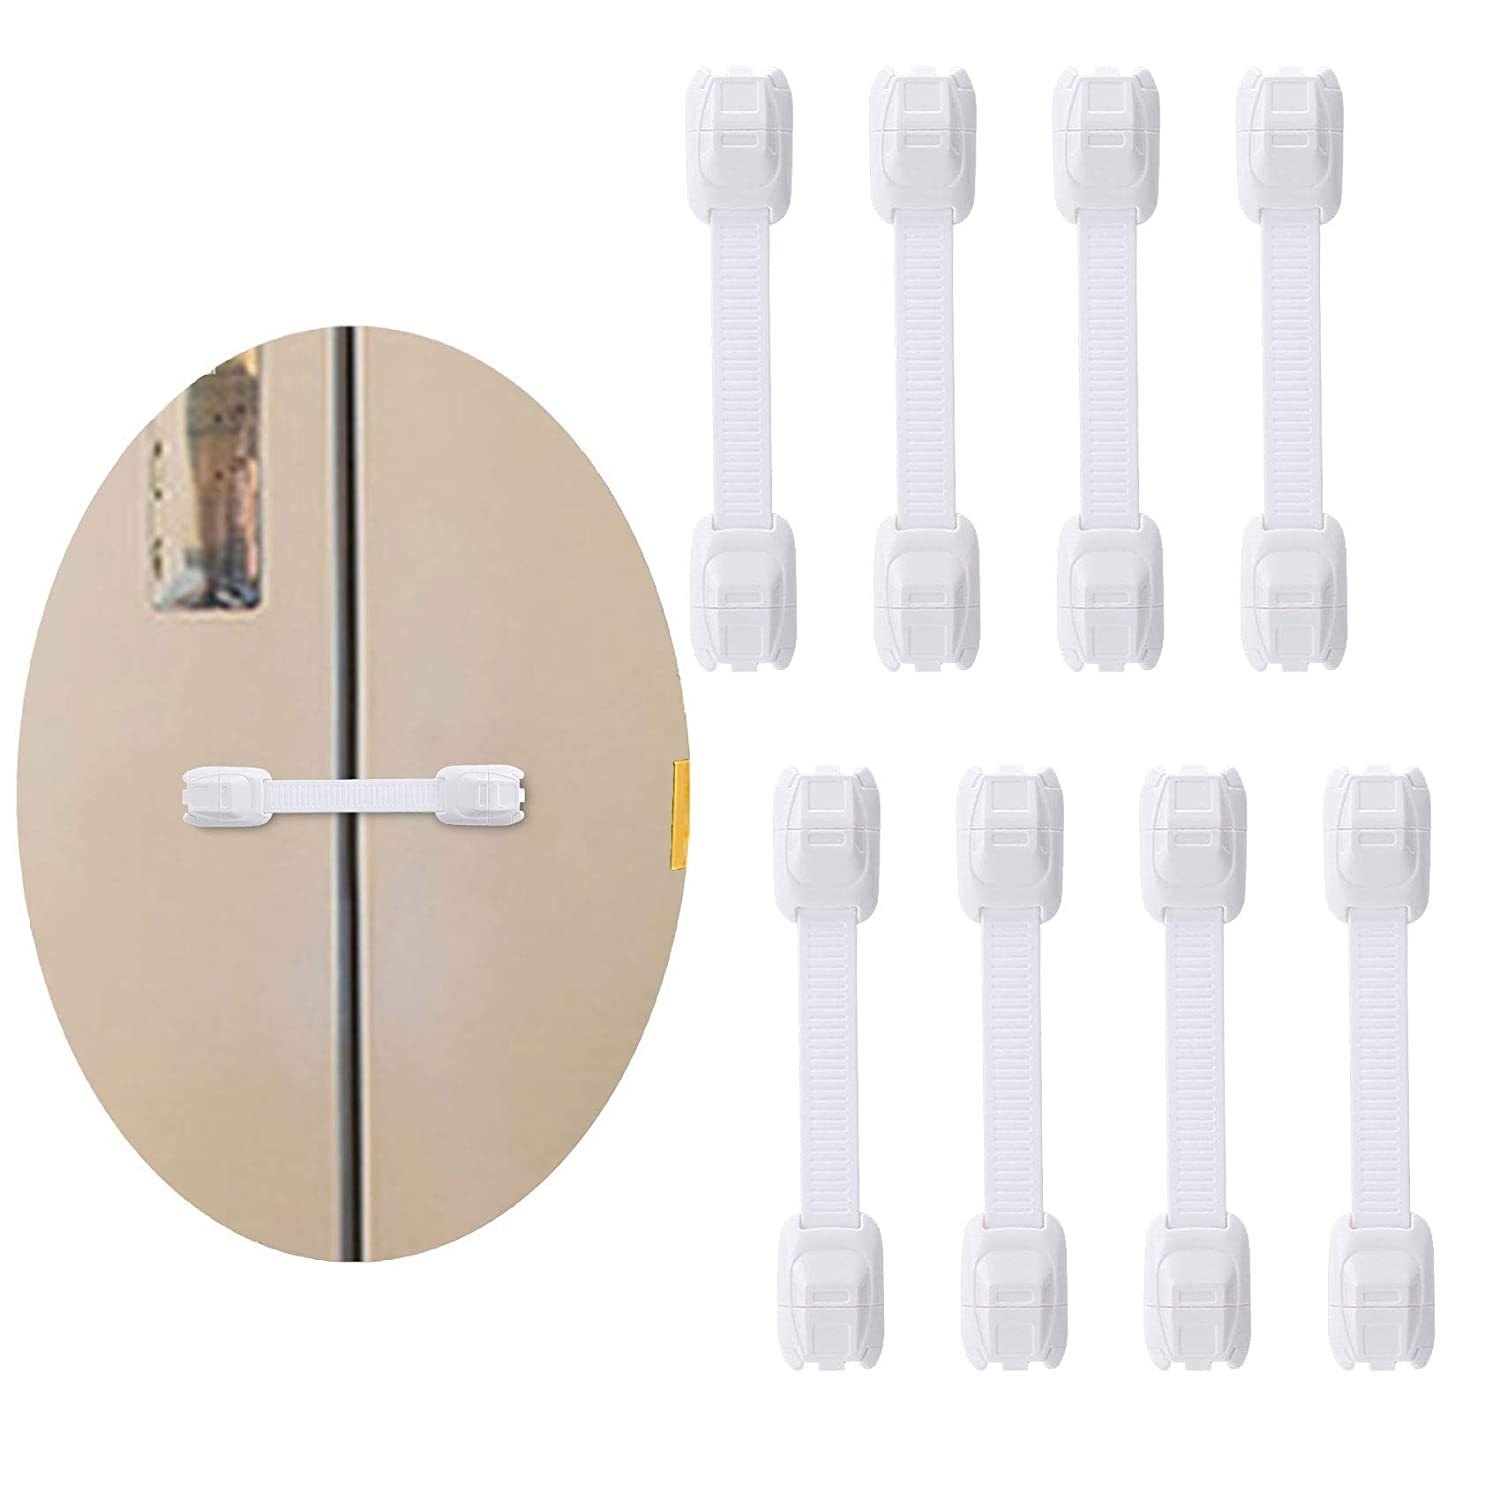 Cabinet Locks for Babies, Child Safety Strap Locks (8 Pack) for Fridge, Drawers, Toilet, Strong Adhesive No Drilling 【Upgrade】